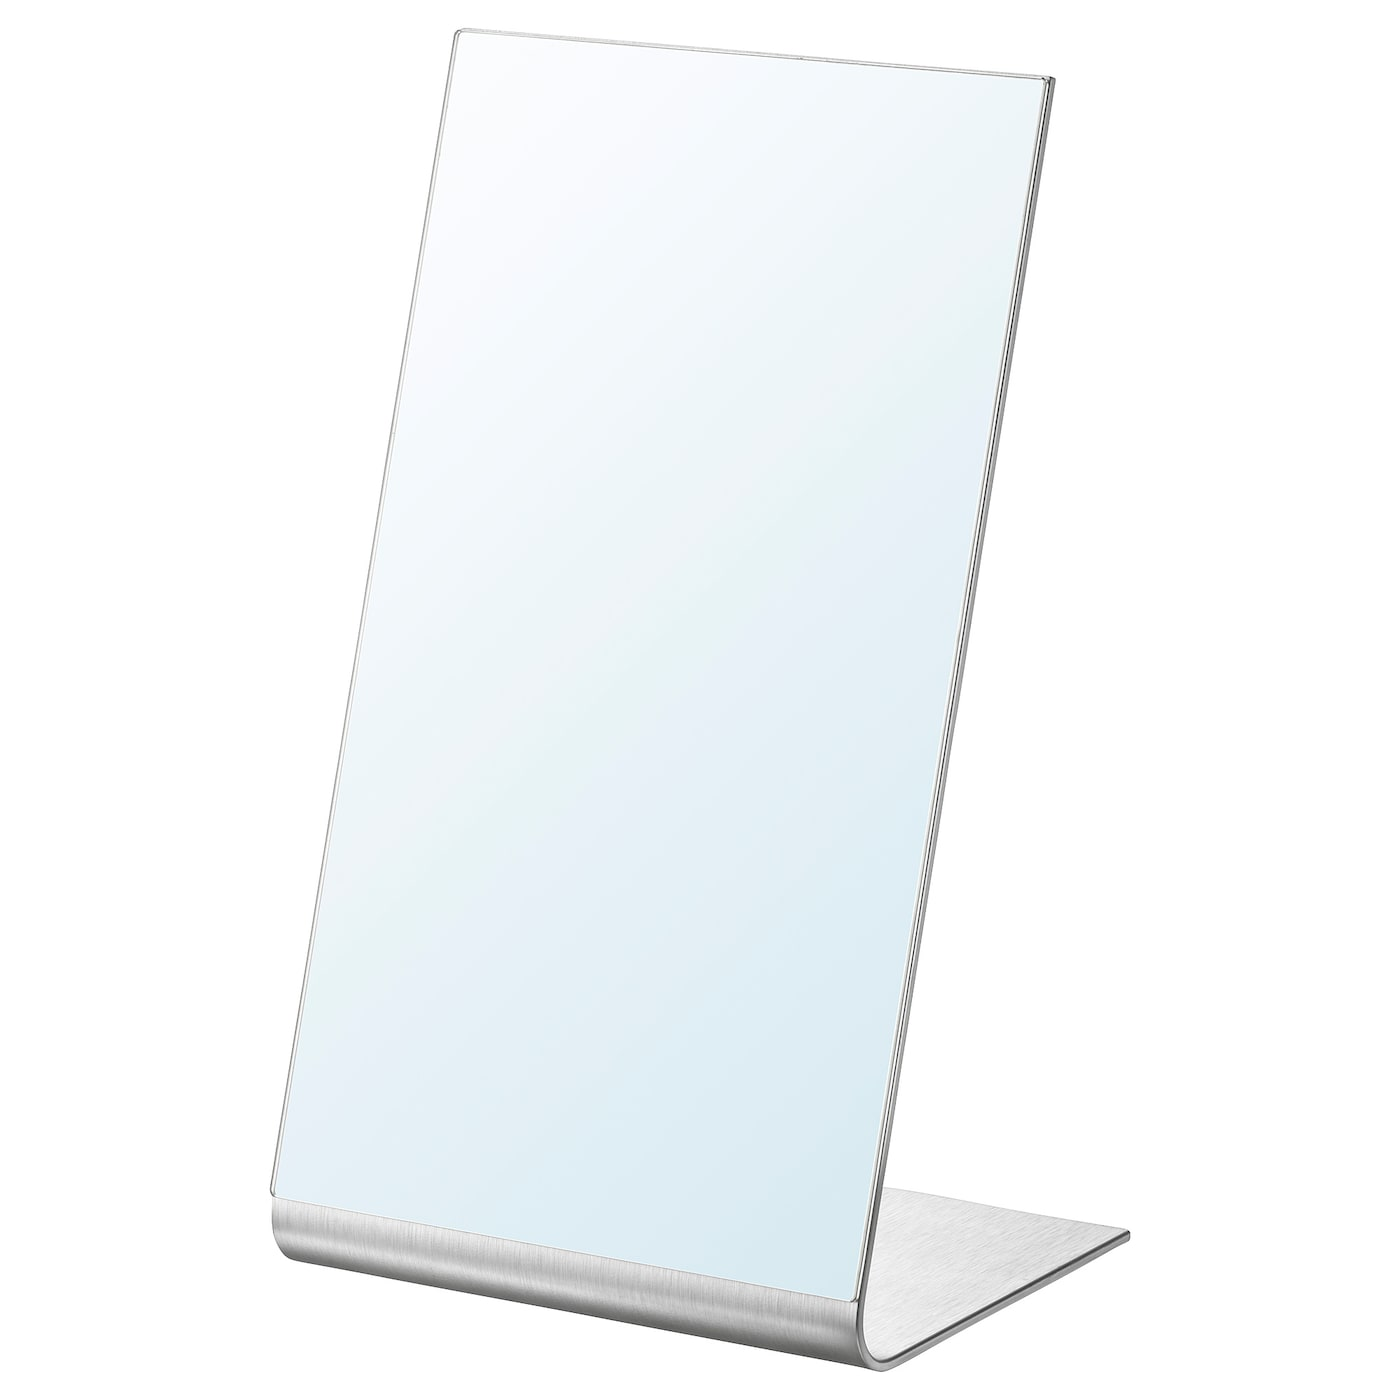 Ikea Tysnes Table Mirror Suitable For Use In Most Rooms And Tested Roved